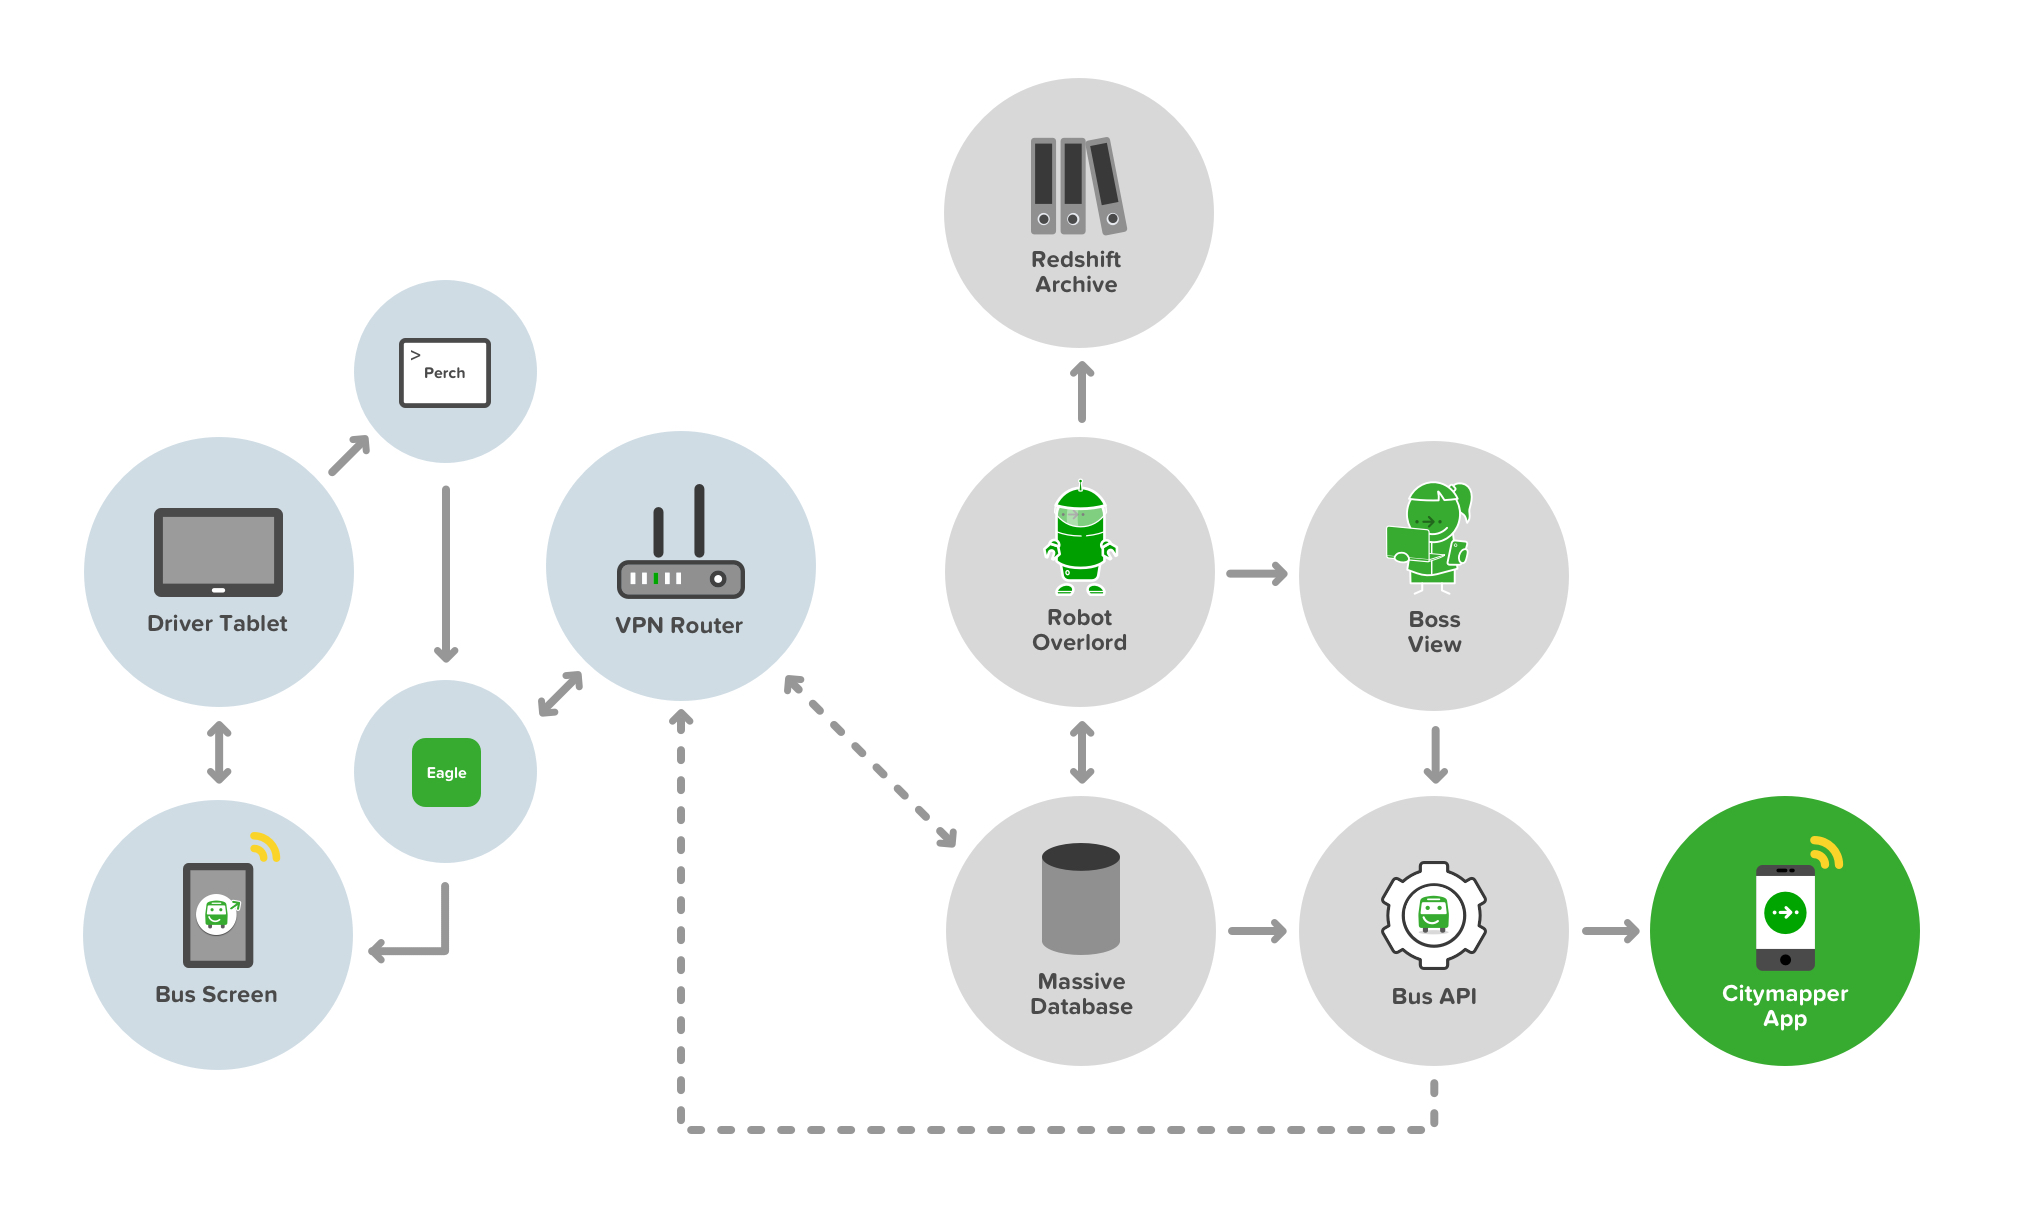 The full development stack of Smartbus from API to App to Bus to User